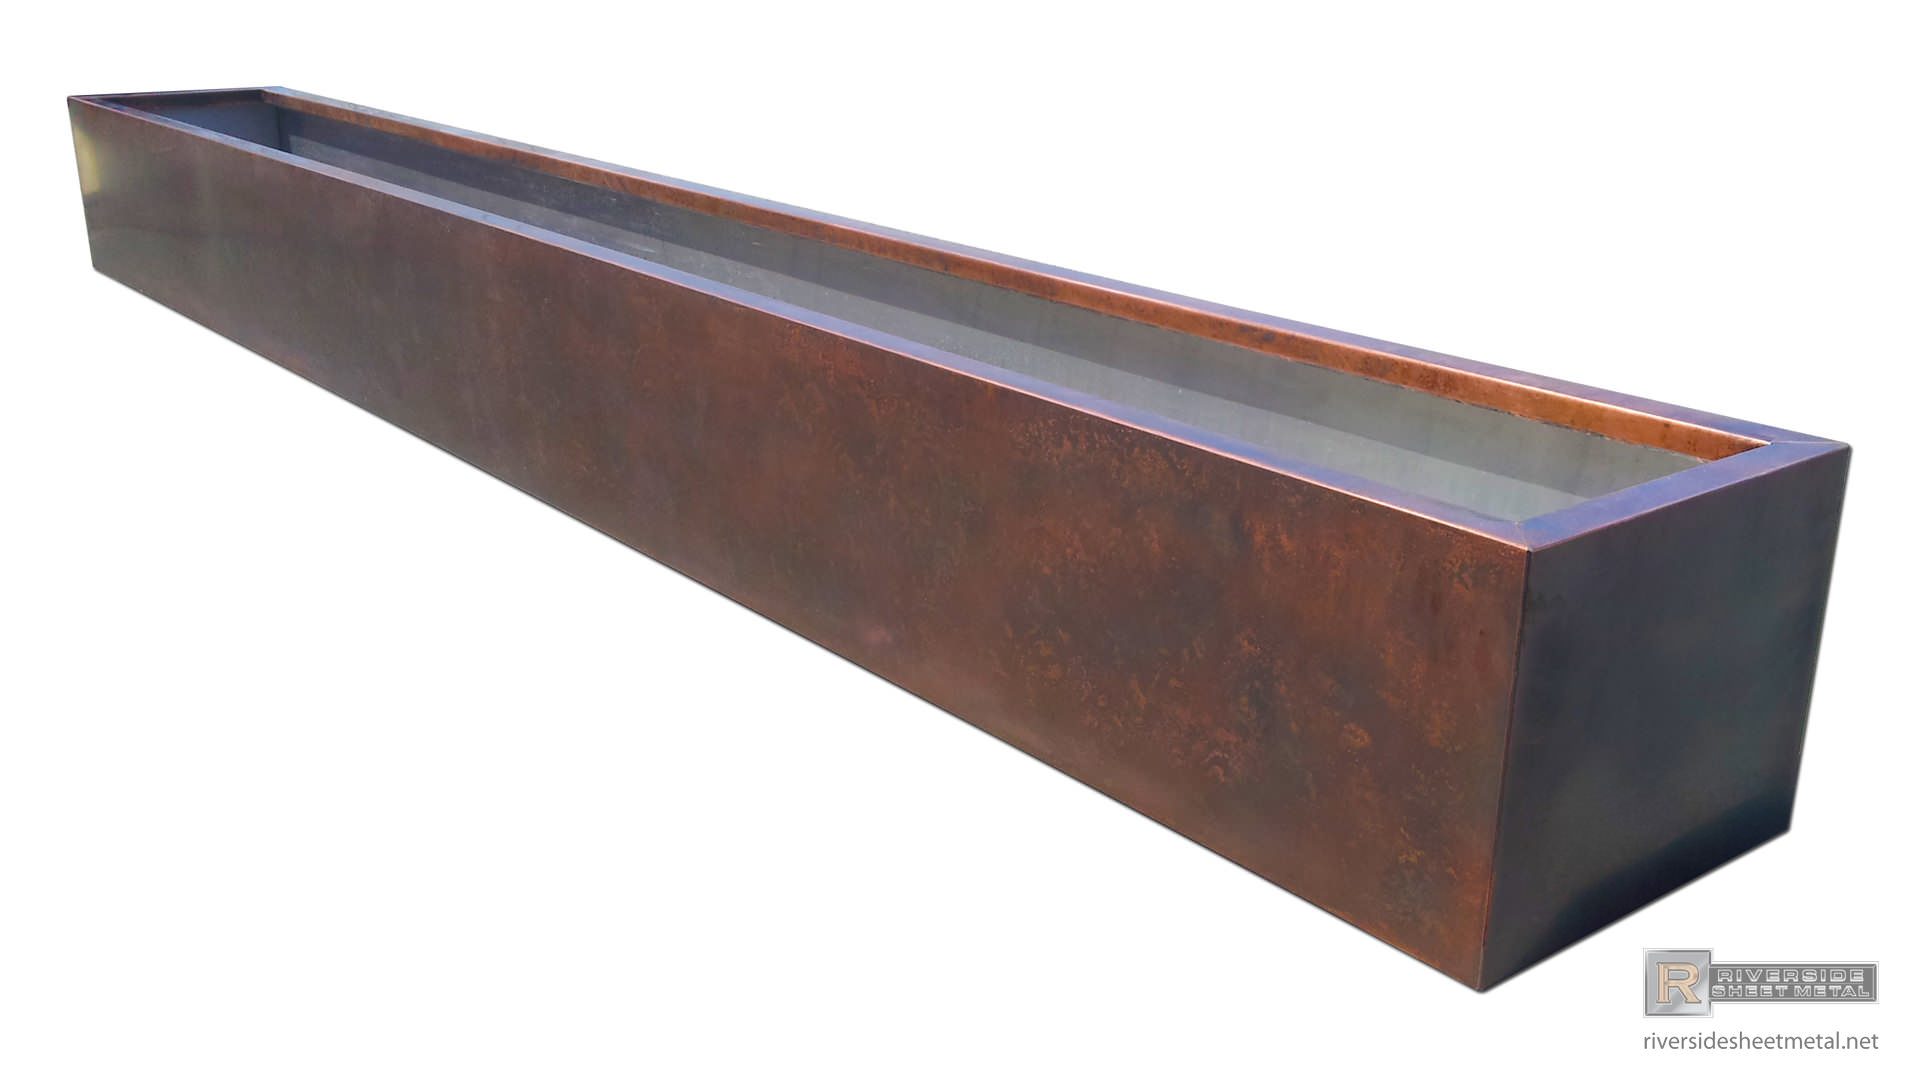 Planters Window Flower Boxes Copper Stainless Steel Zinc